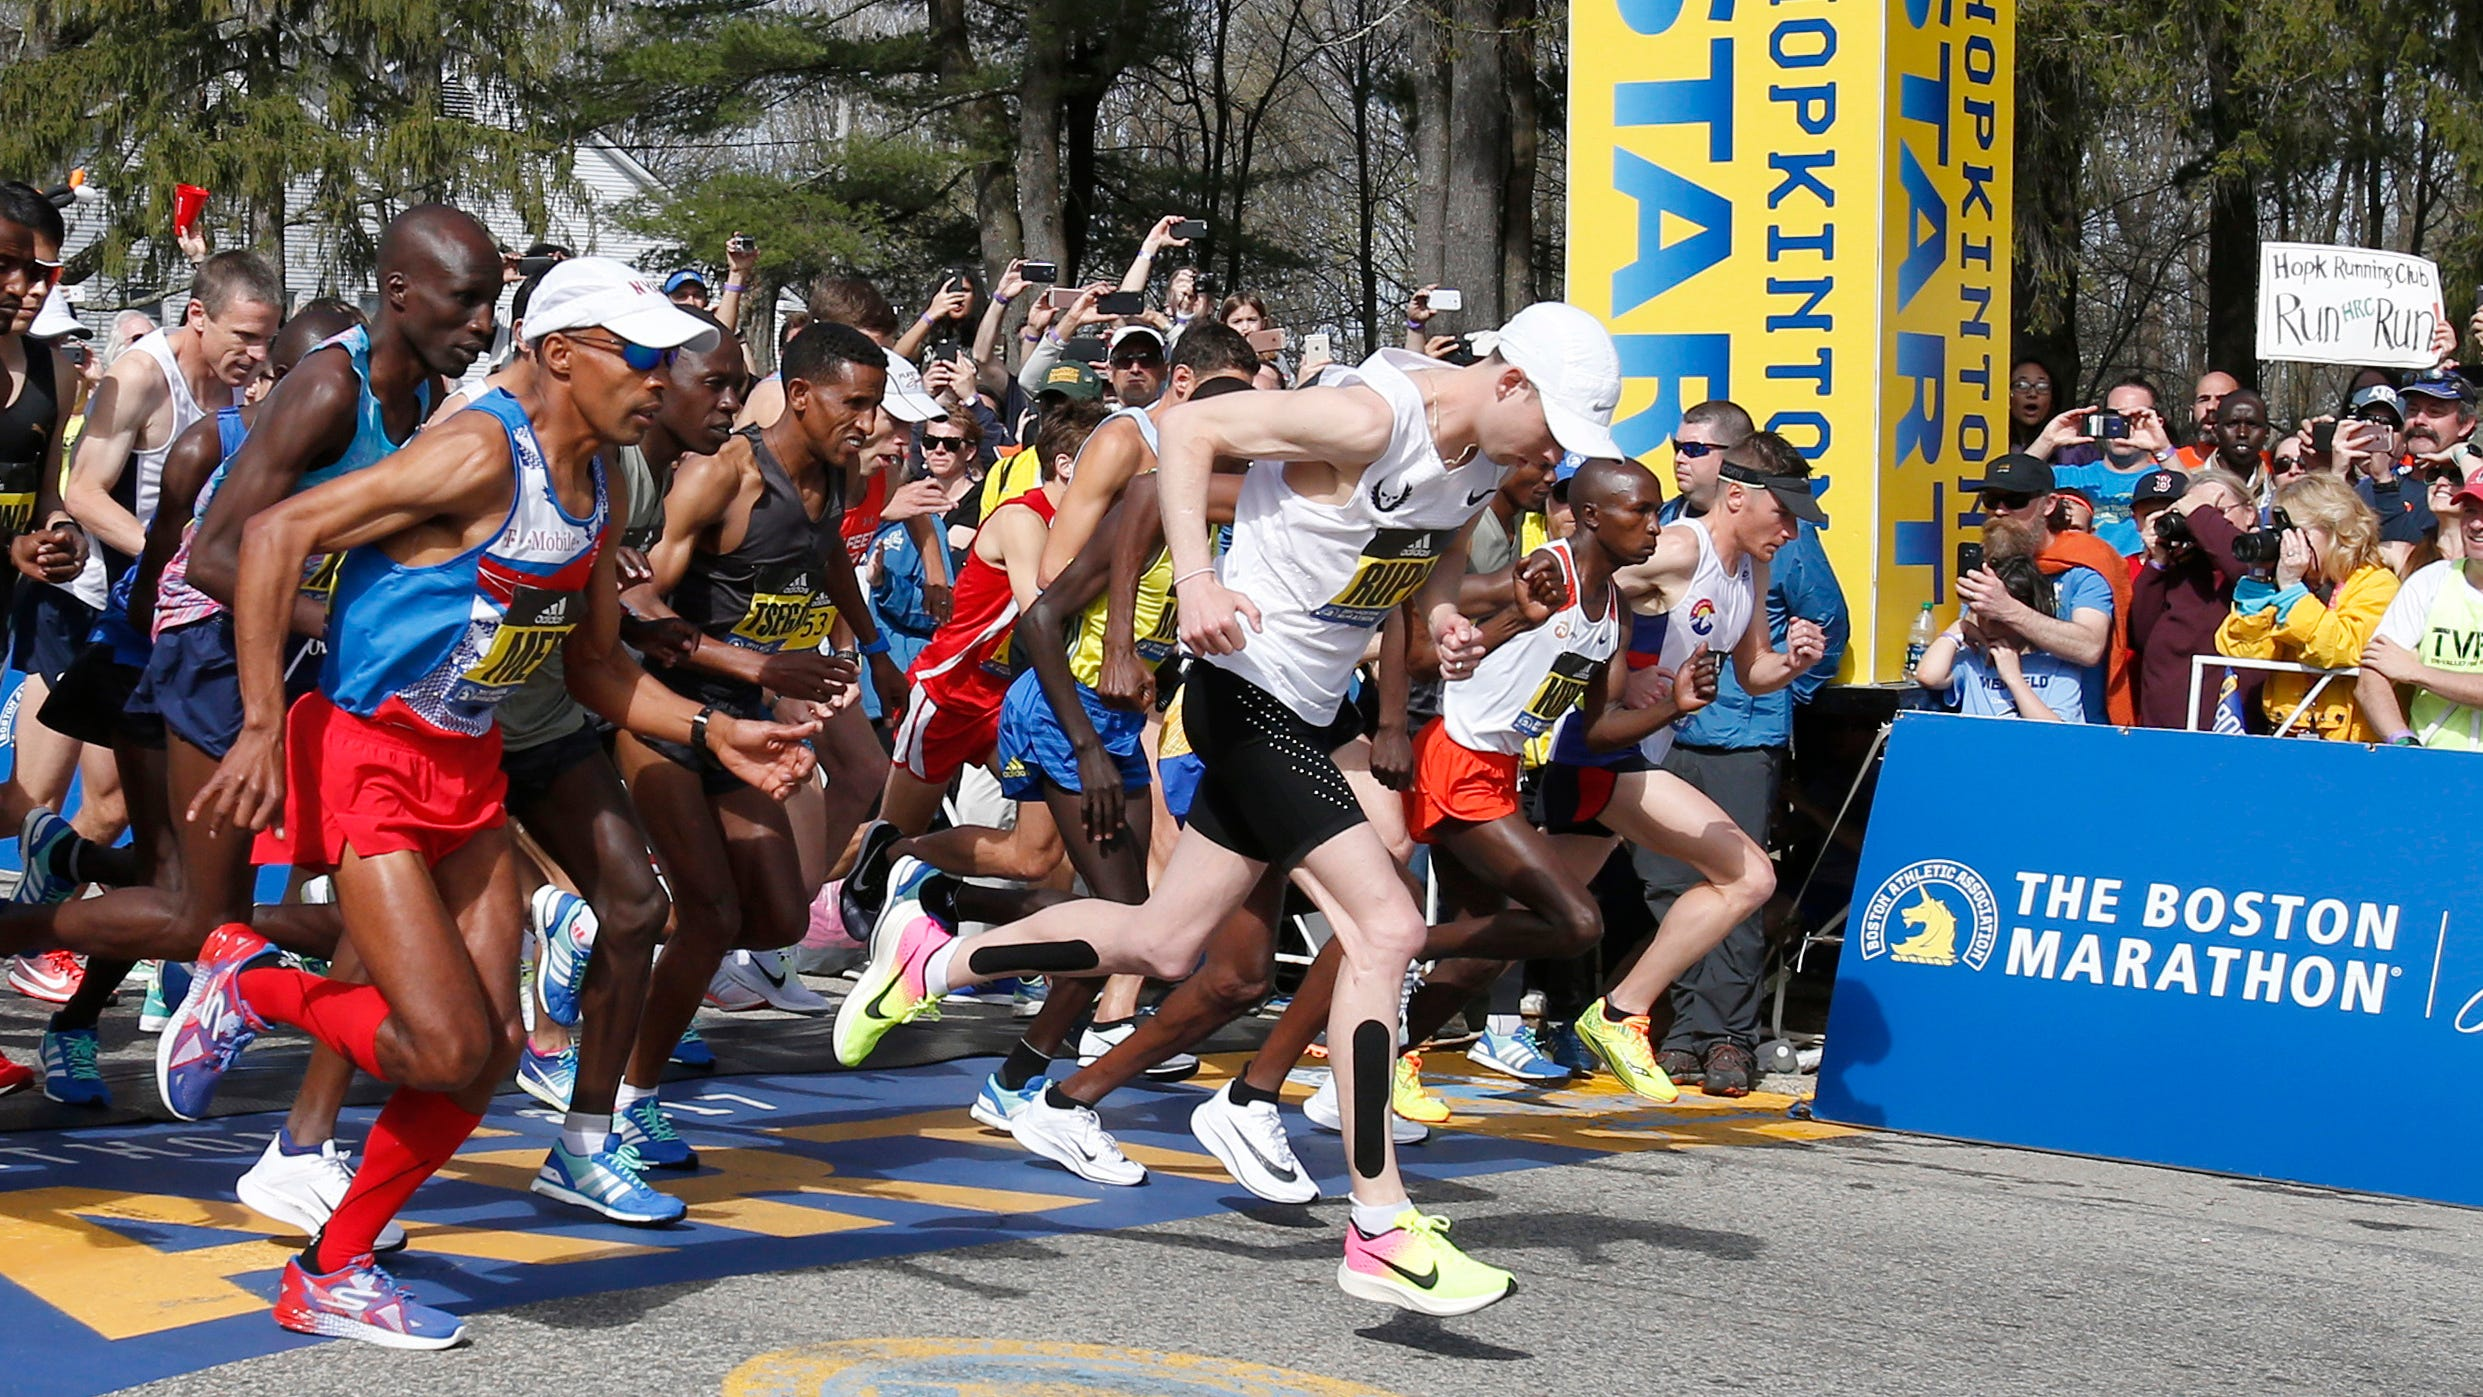 Coronavirus live updates: NYC targets reopening in June; Boston Marathon canceled; San Francisco stay-at-home order is now indefinite